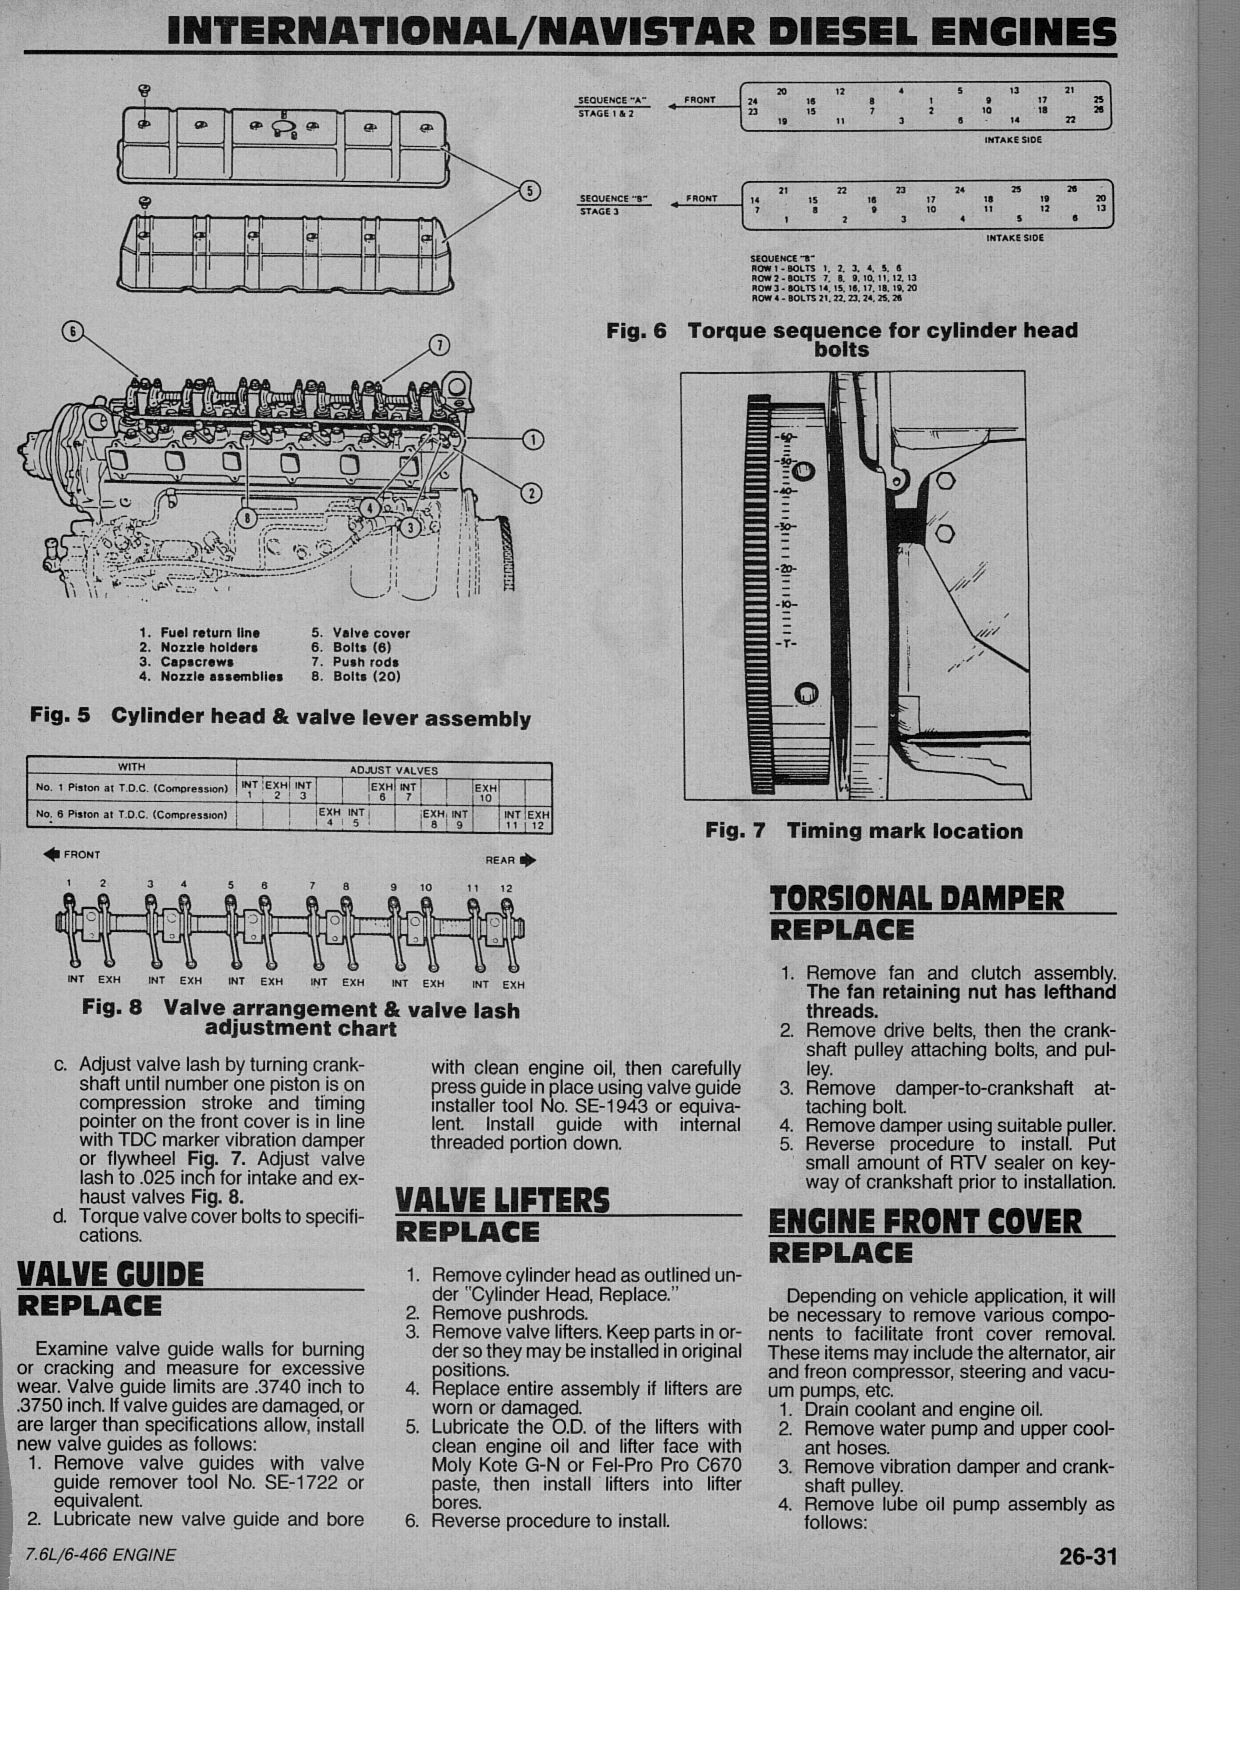 What is the torque specks for 1994 International 7 6 engine